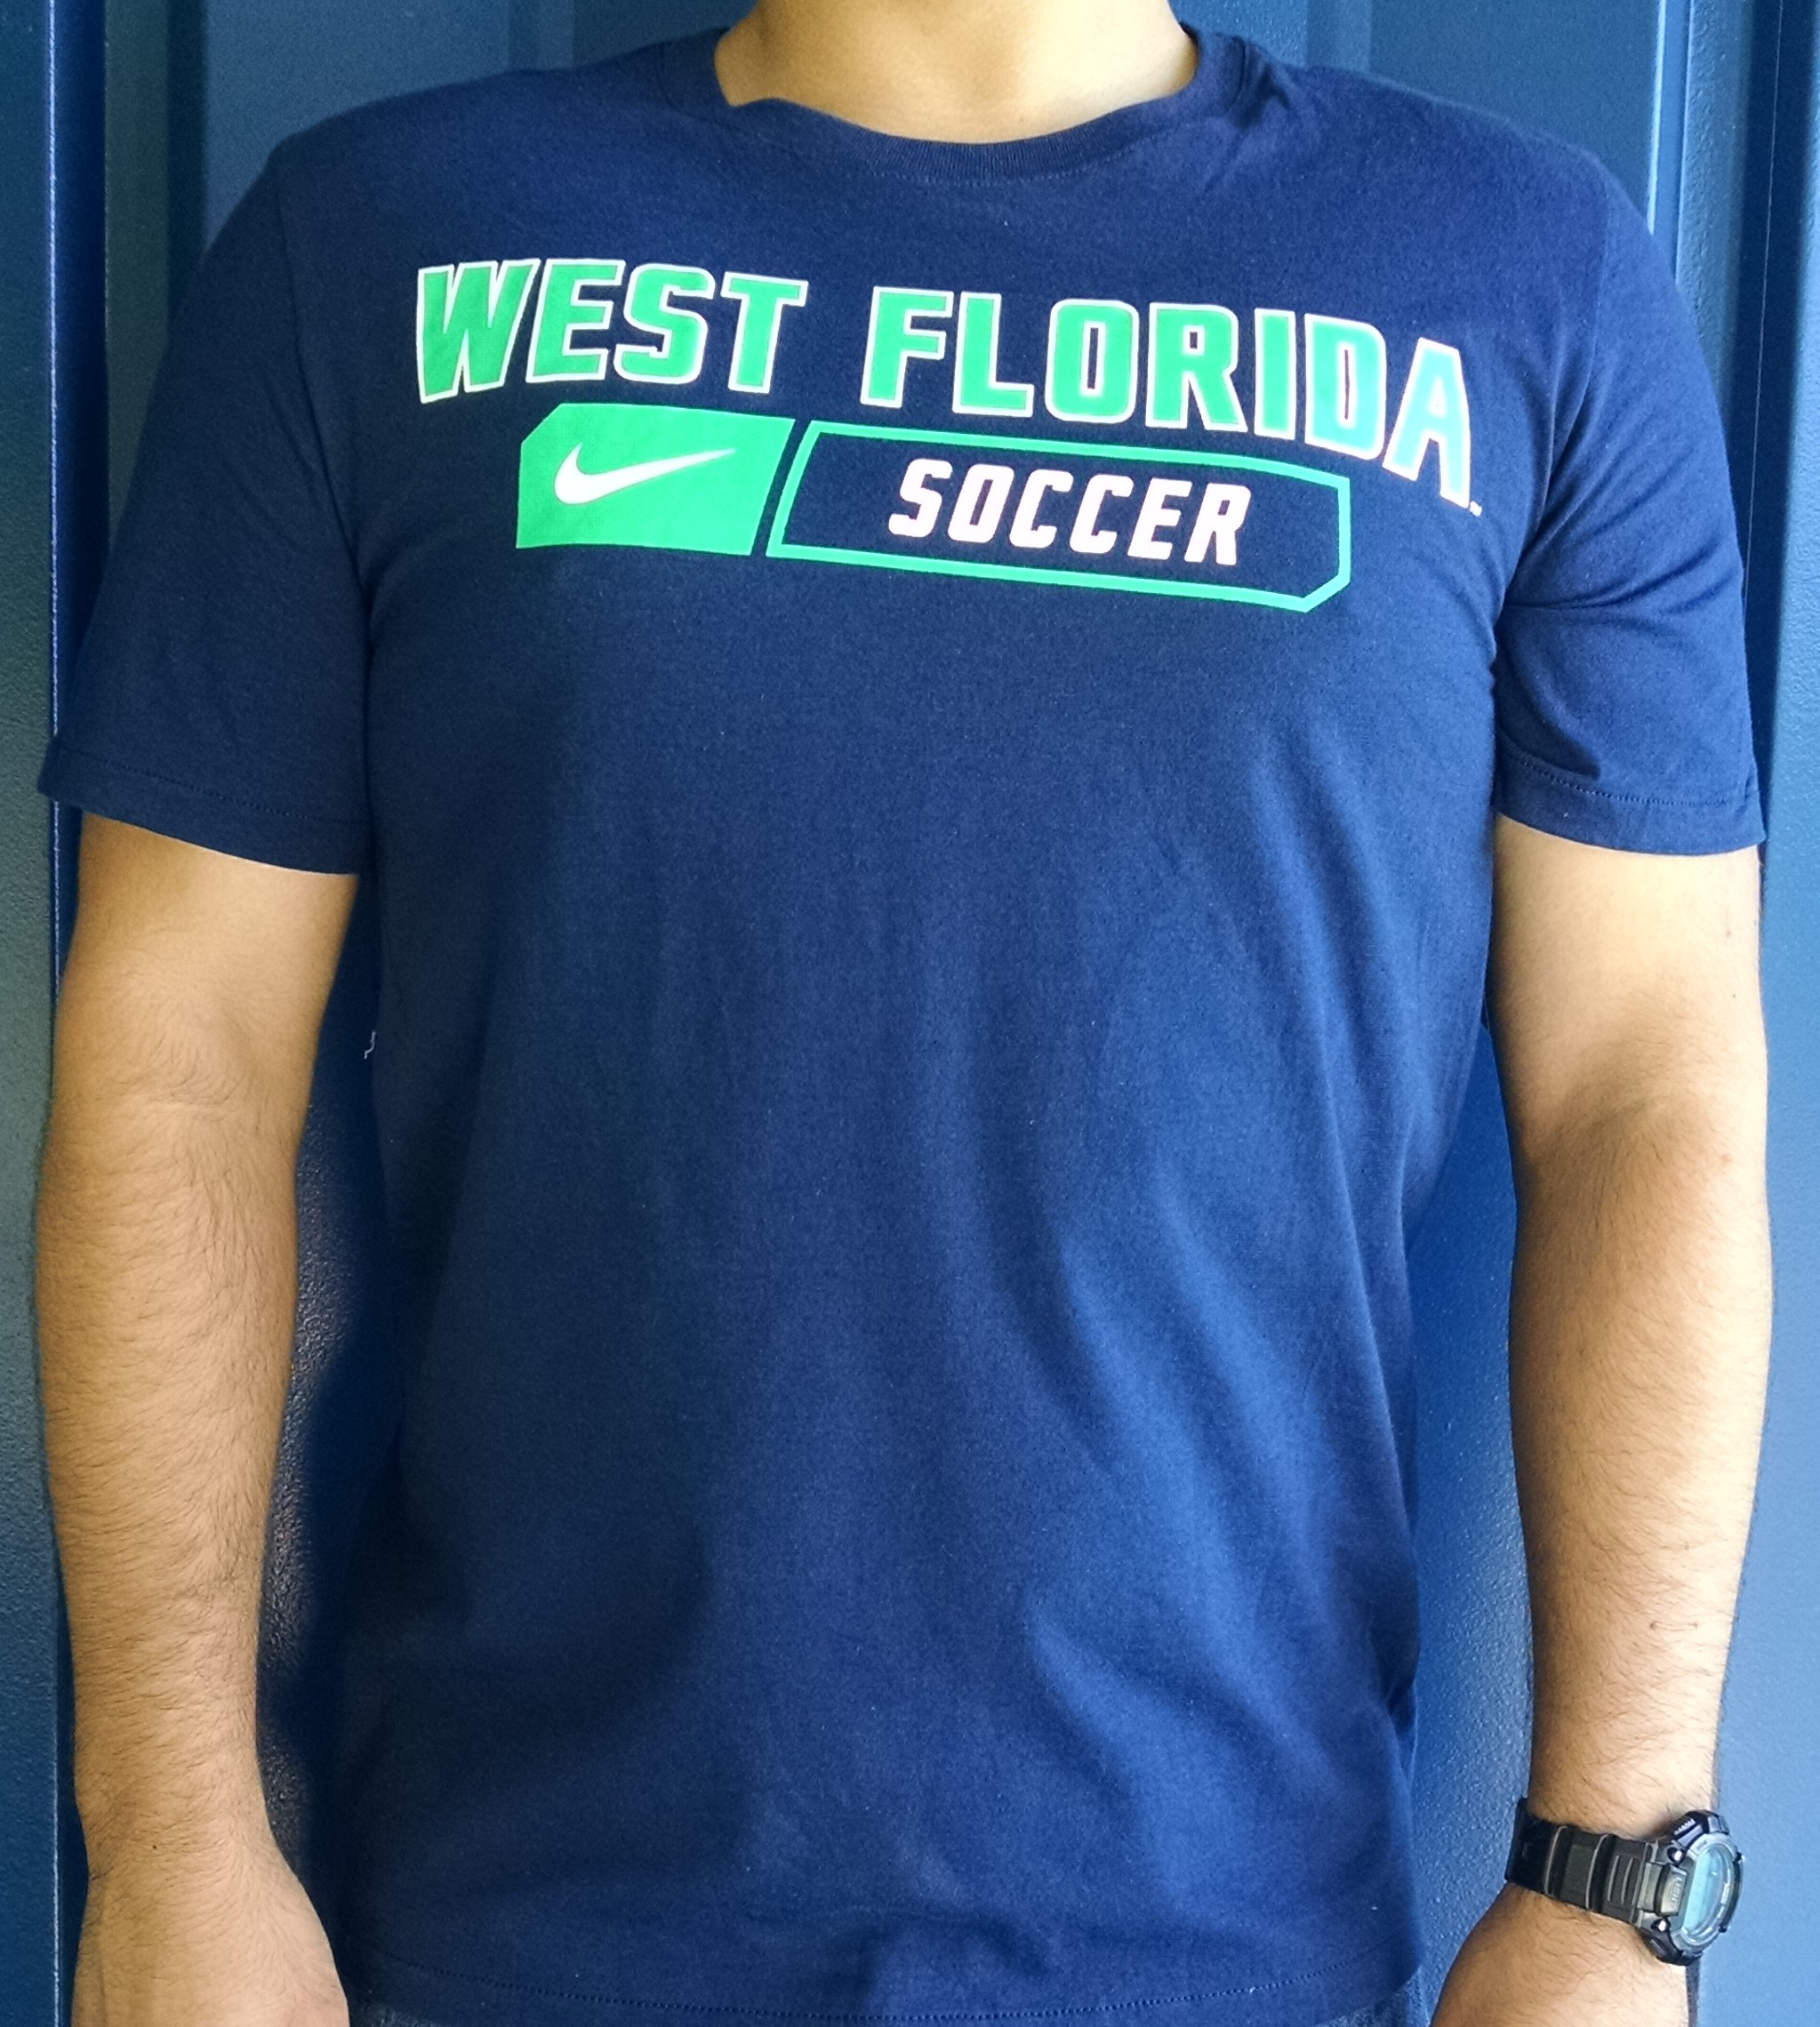 WEST FLORIDA SOCCER SHIRT